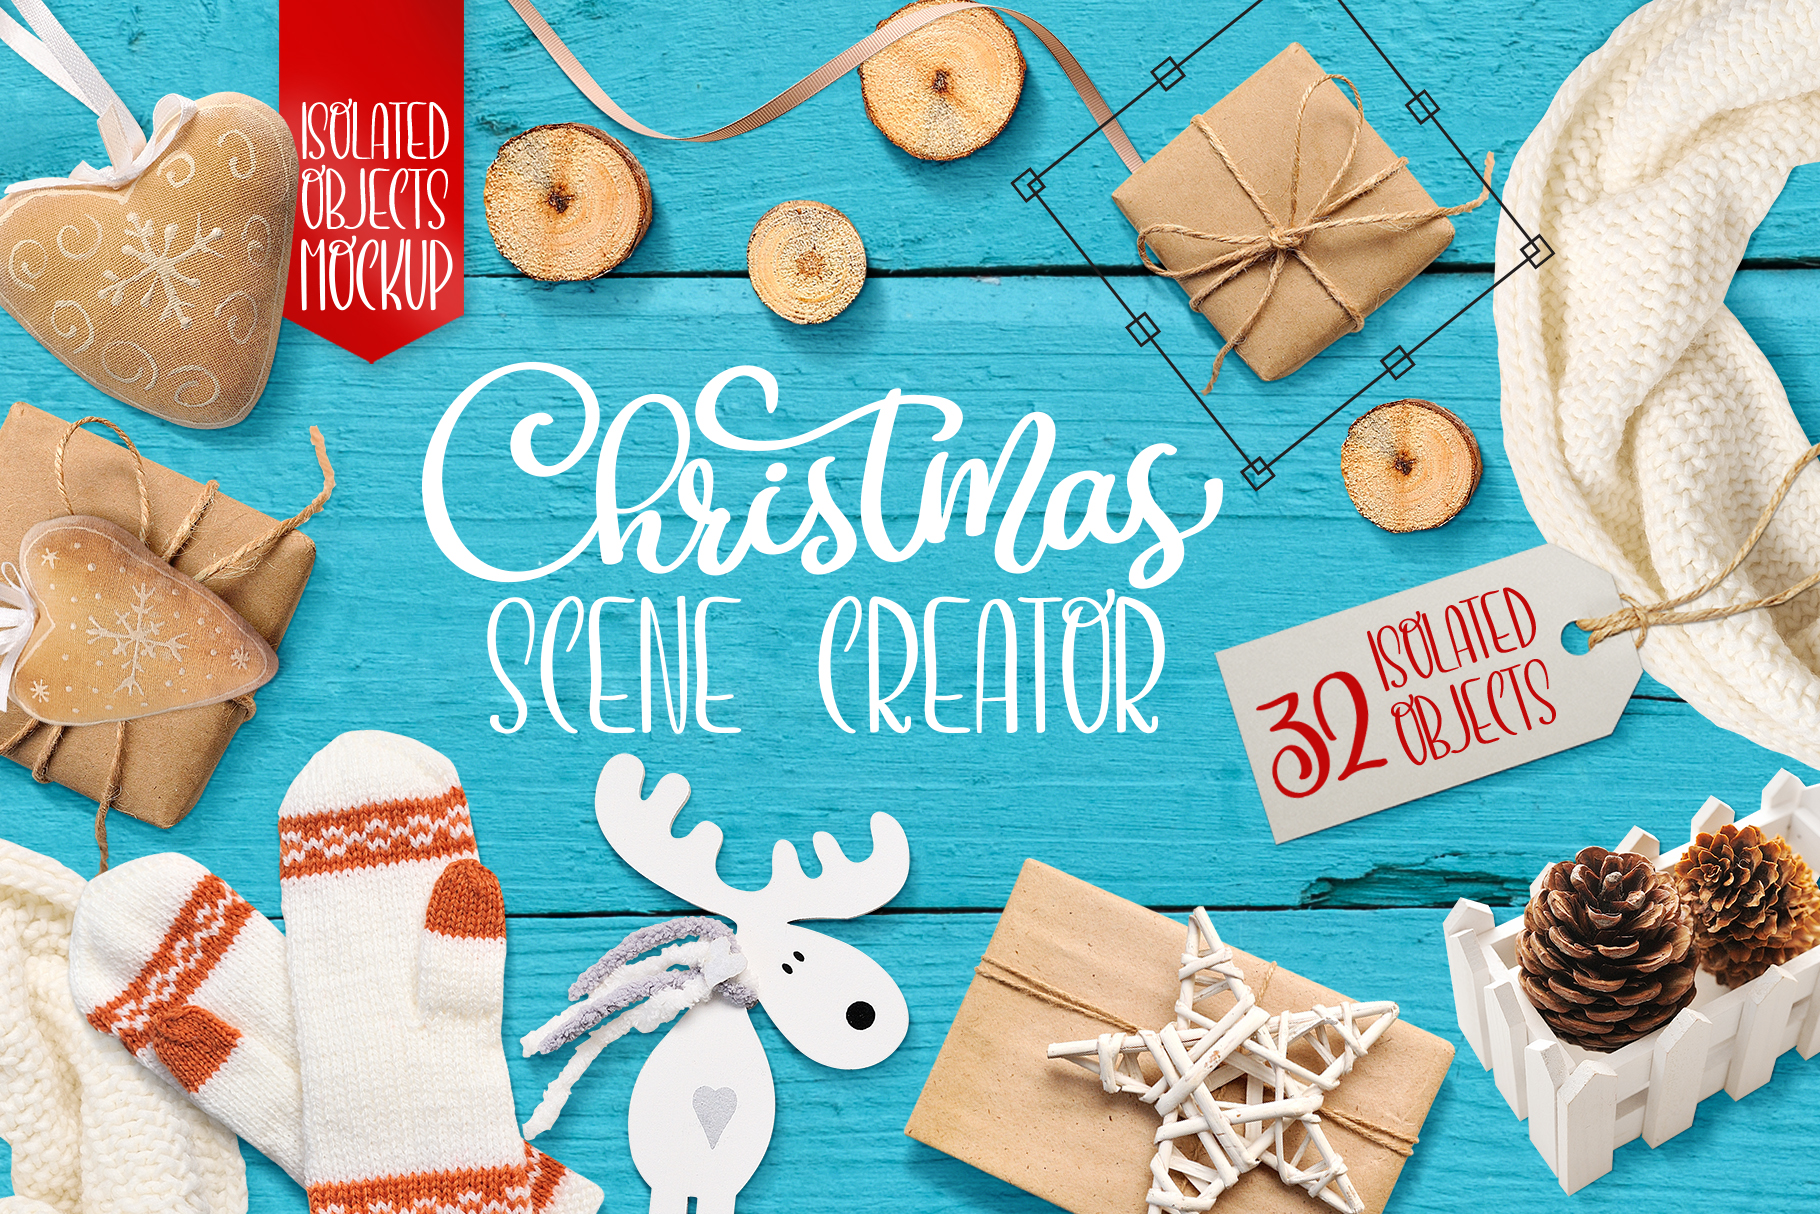 Christmas Scene Creator, Isolated Items Graphic Objects By Happy Letters